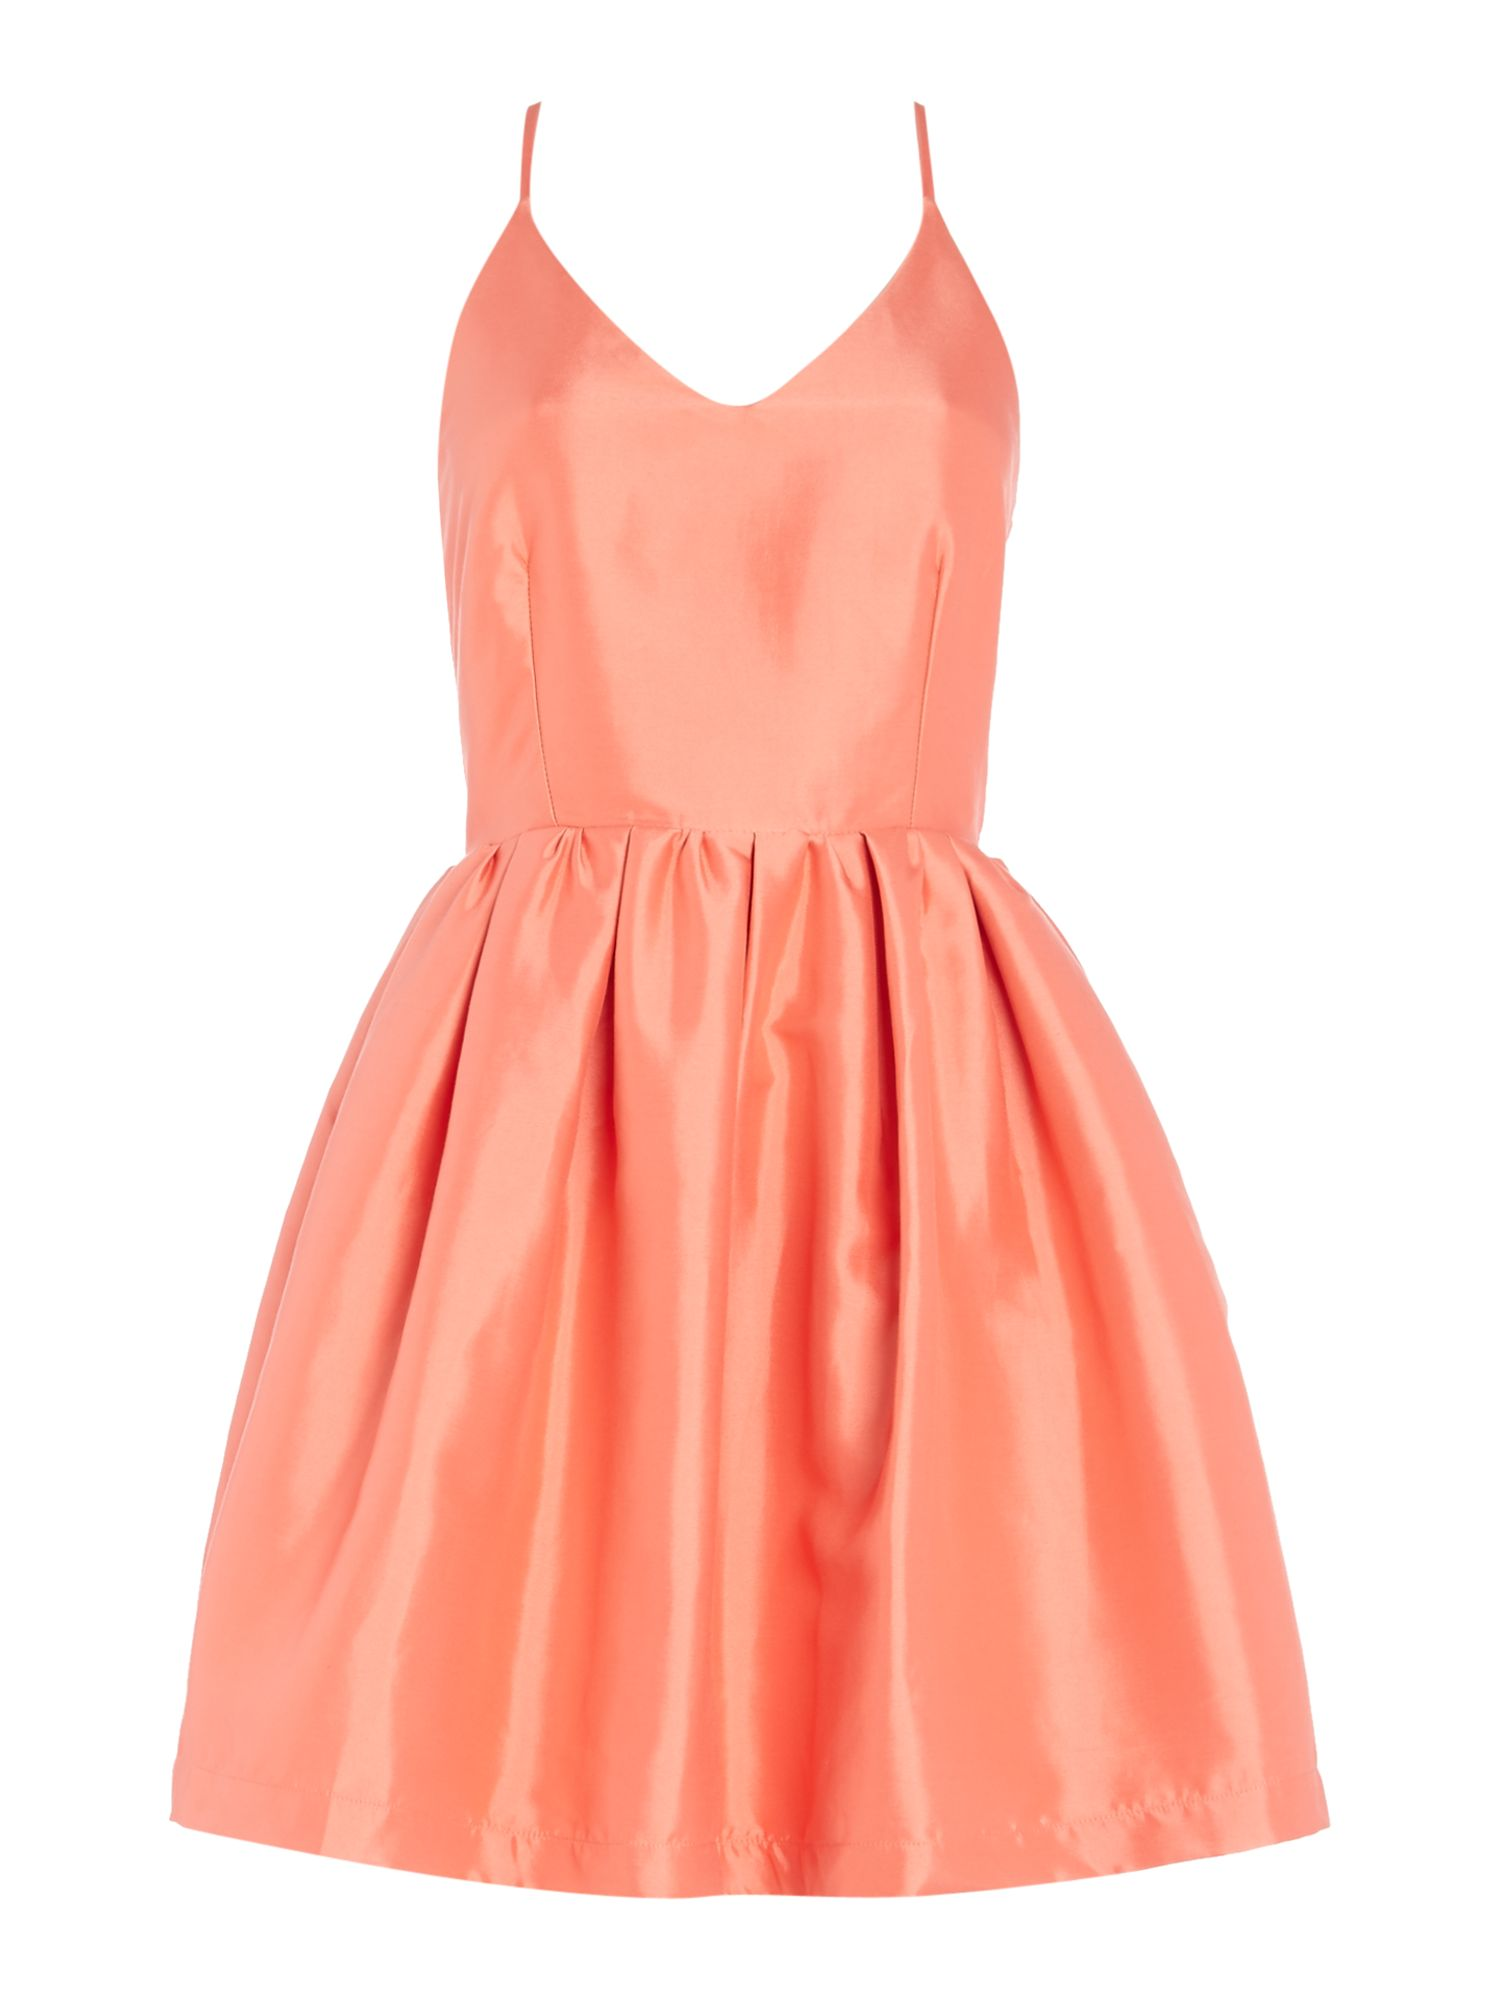 Girls on Film Girls on Film Sleeveless Fit And Flare Dress, Coral